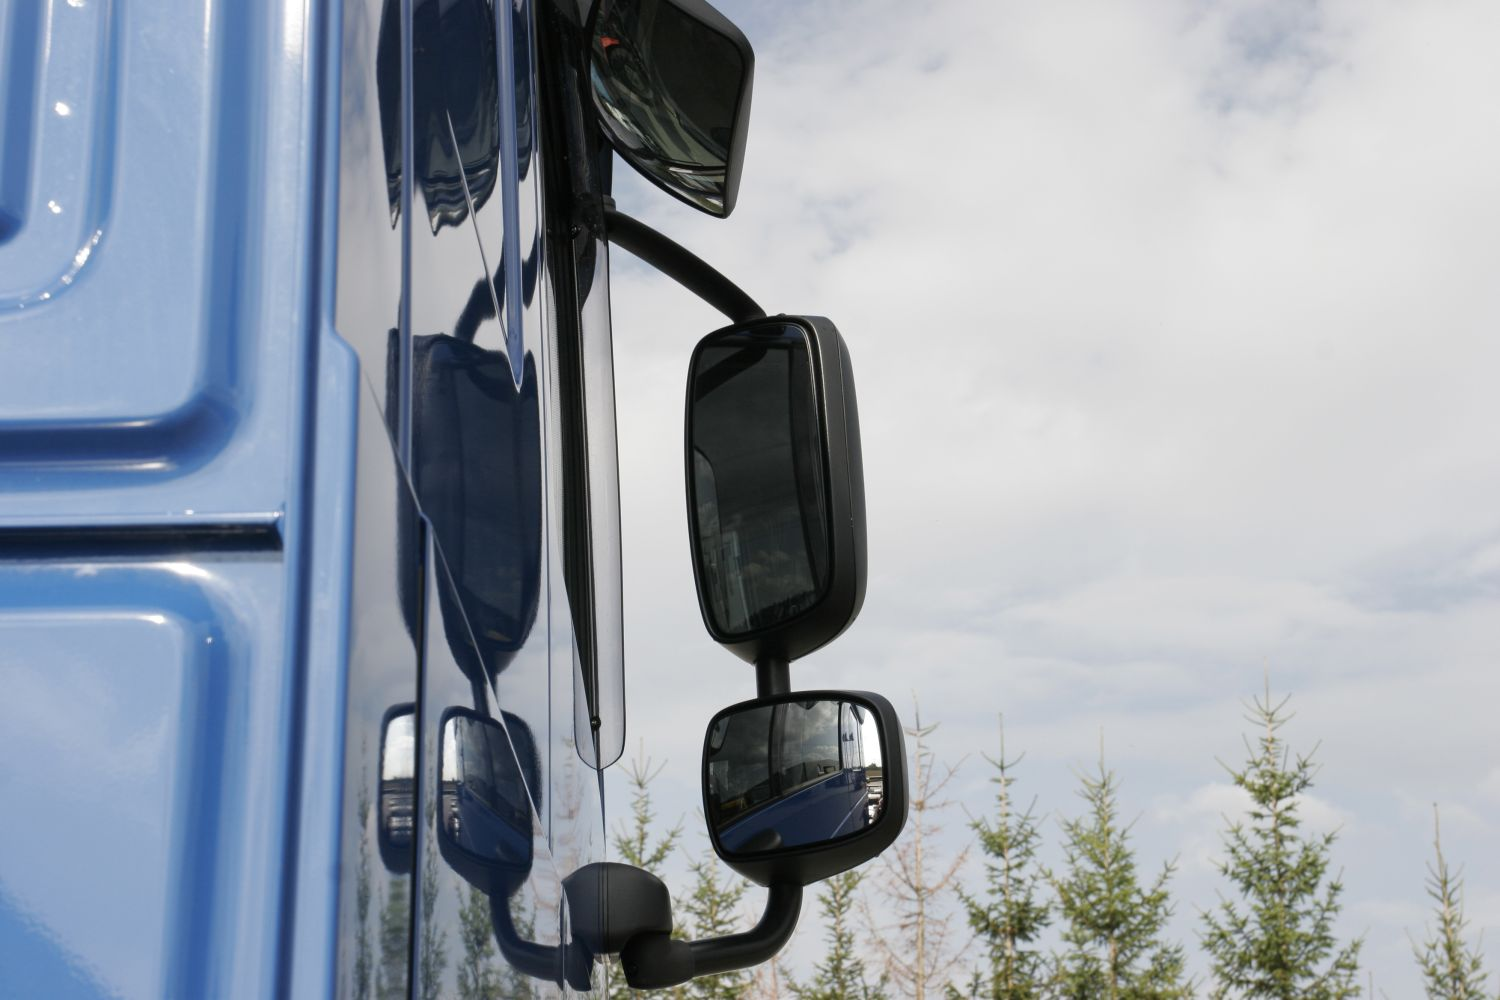 Mirrors: Direct and Indirect Visibility in Trucks